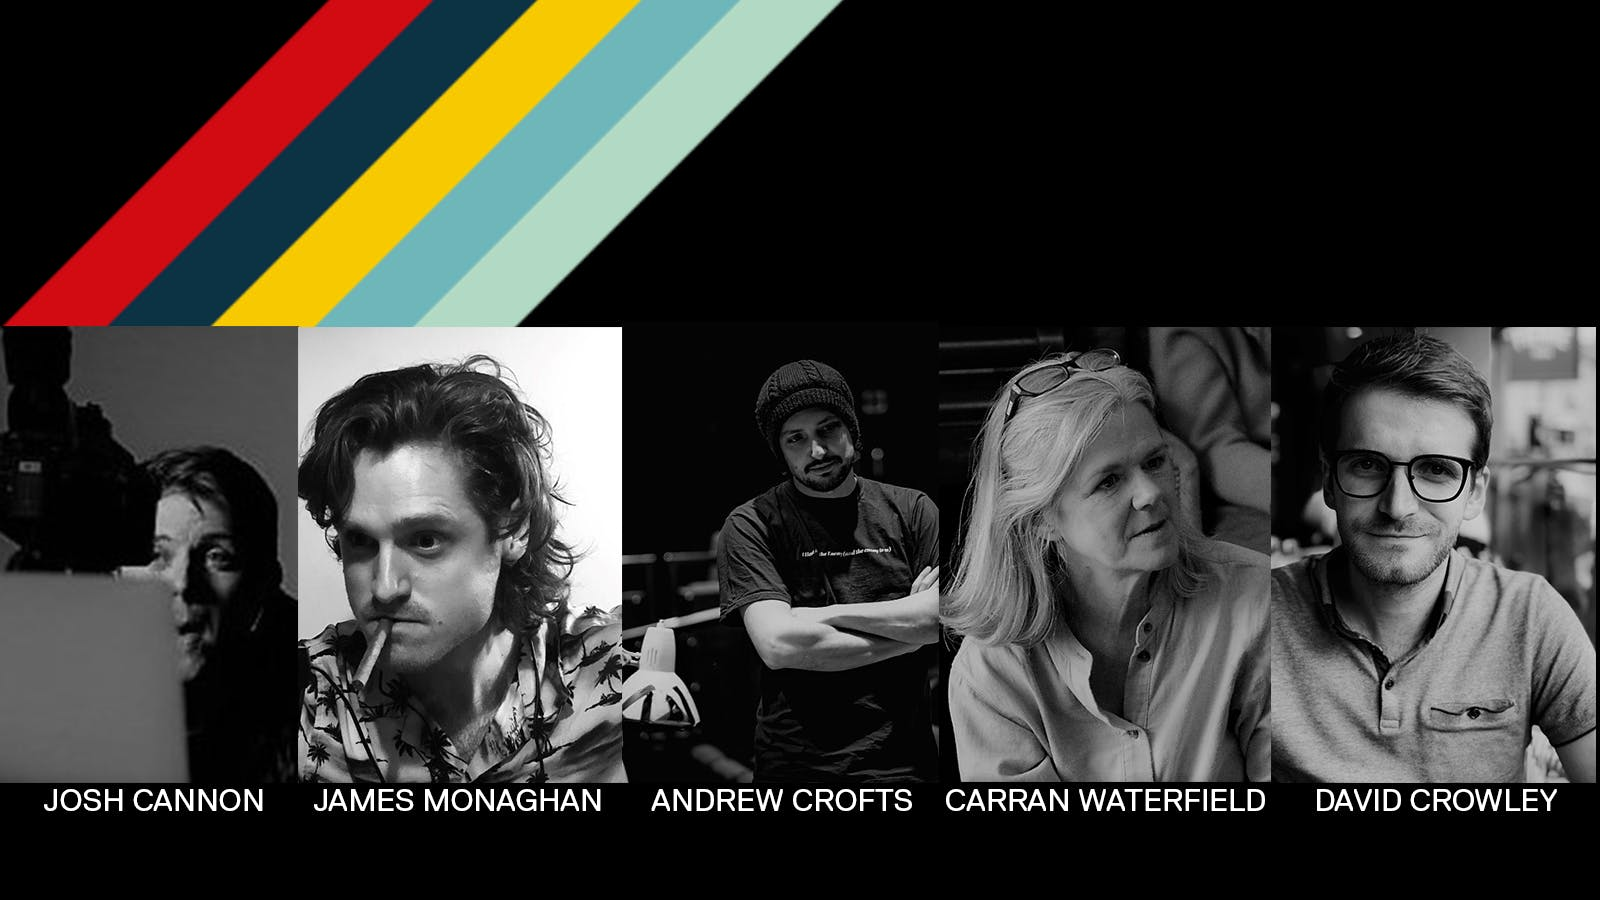 Meet our #TaPPFestOnline Creative Team